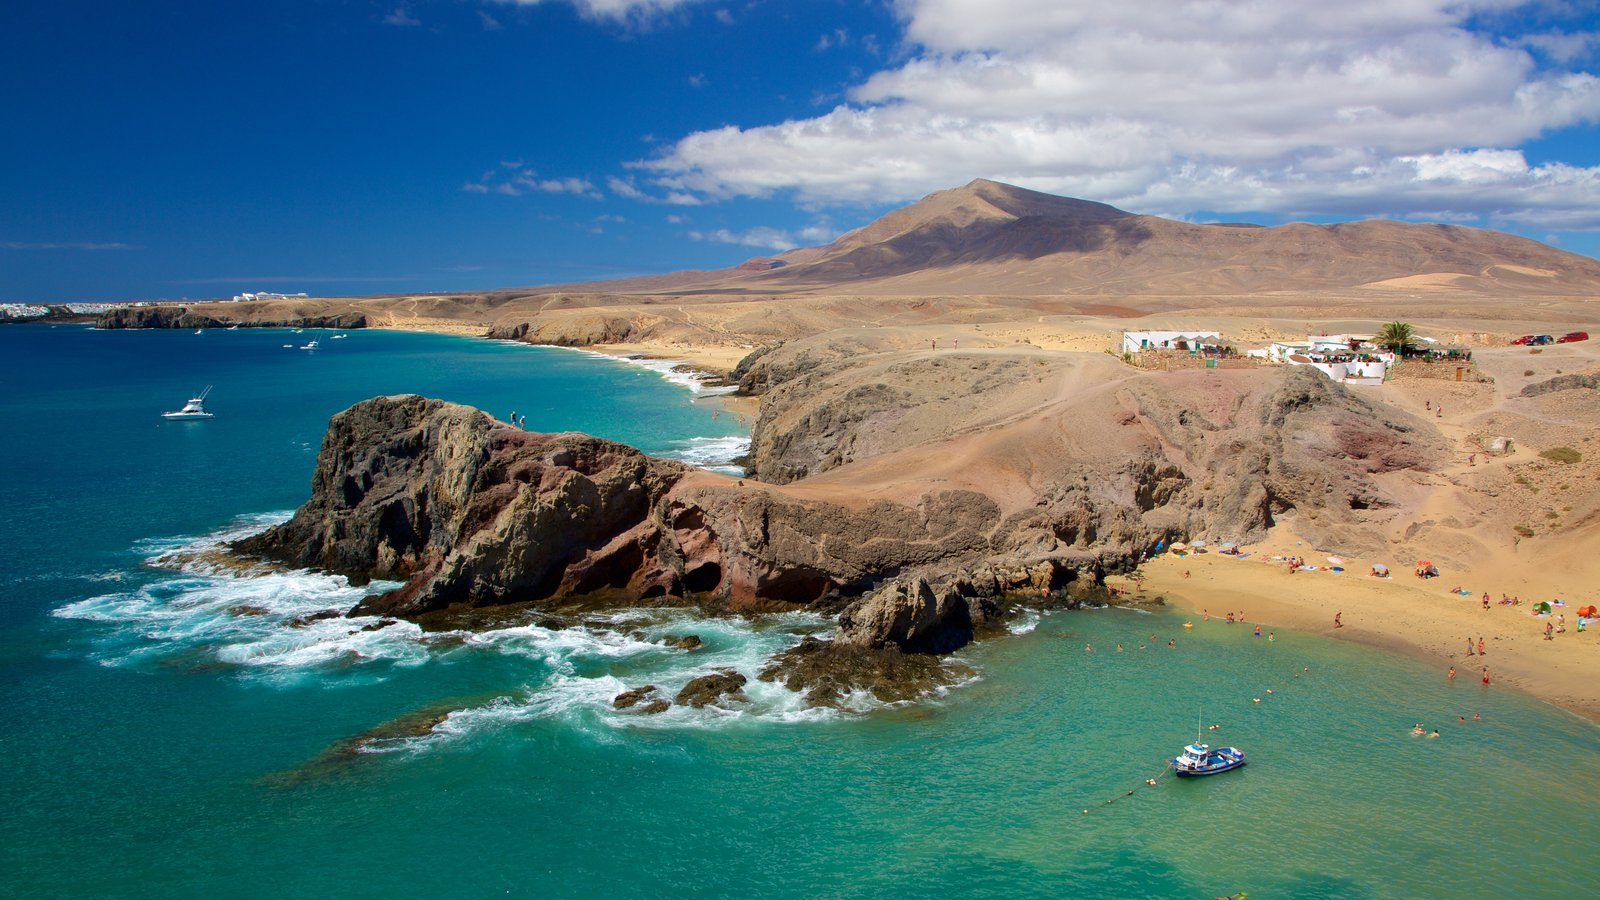 Papagayo Beach featuring boating, general coastal views and rocky coastline